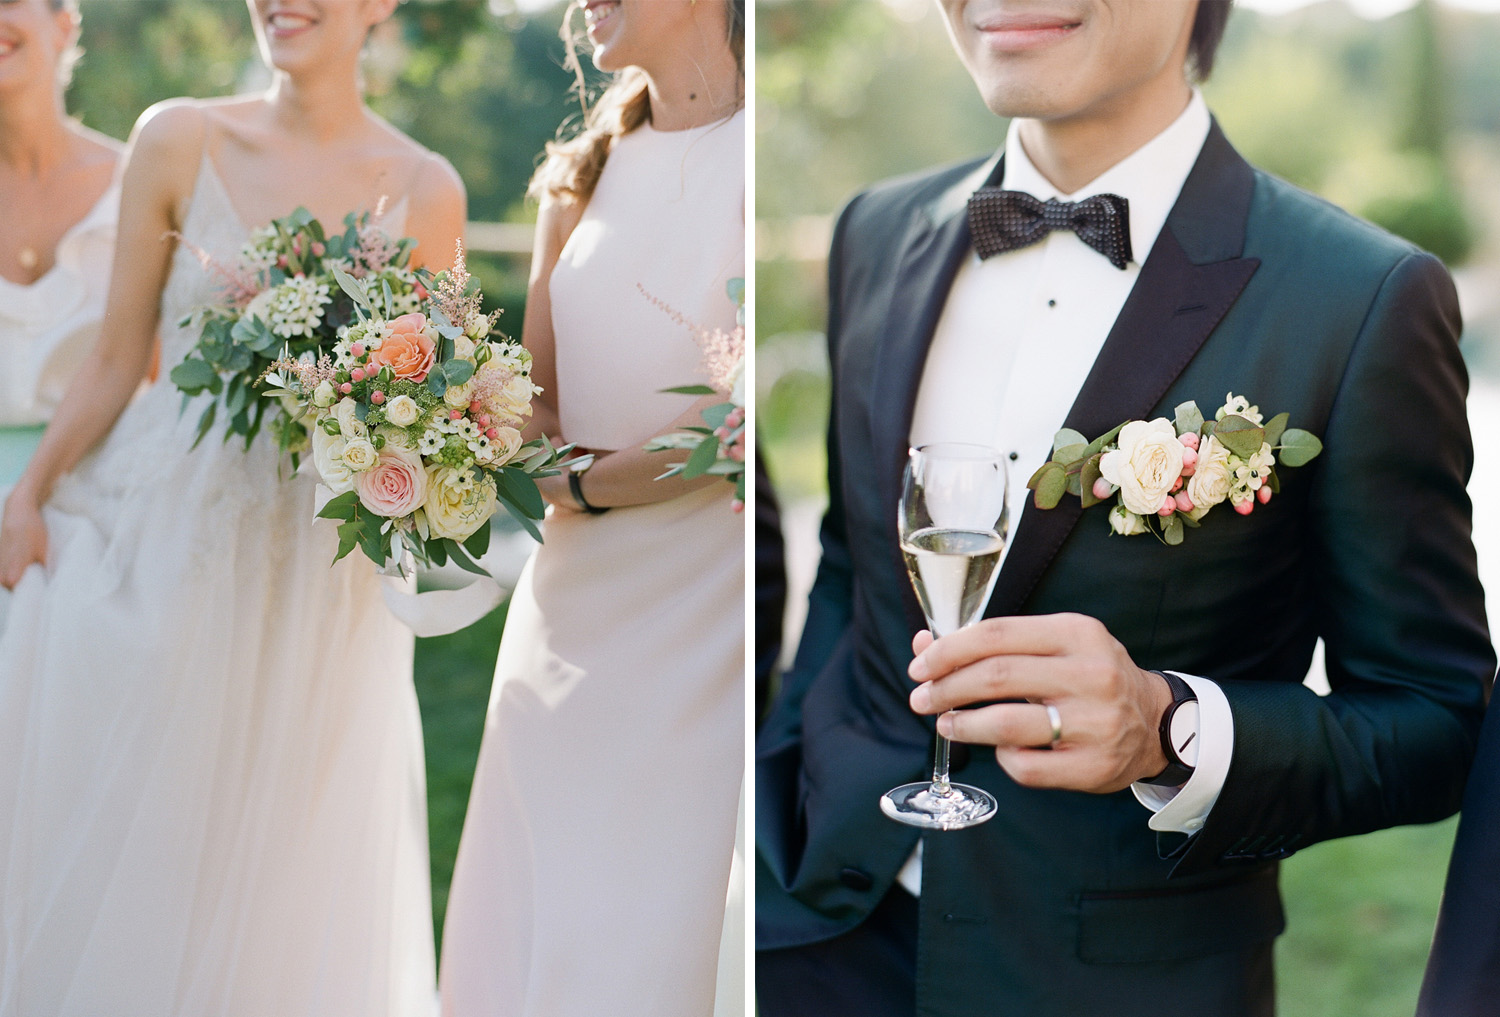 Bridesmaids bouquets and groom's boutonniere with matching rosebuds and eucalyptus leaves; Sylvie Gil Photography